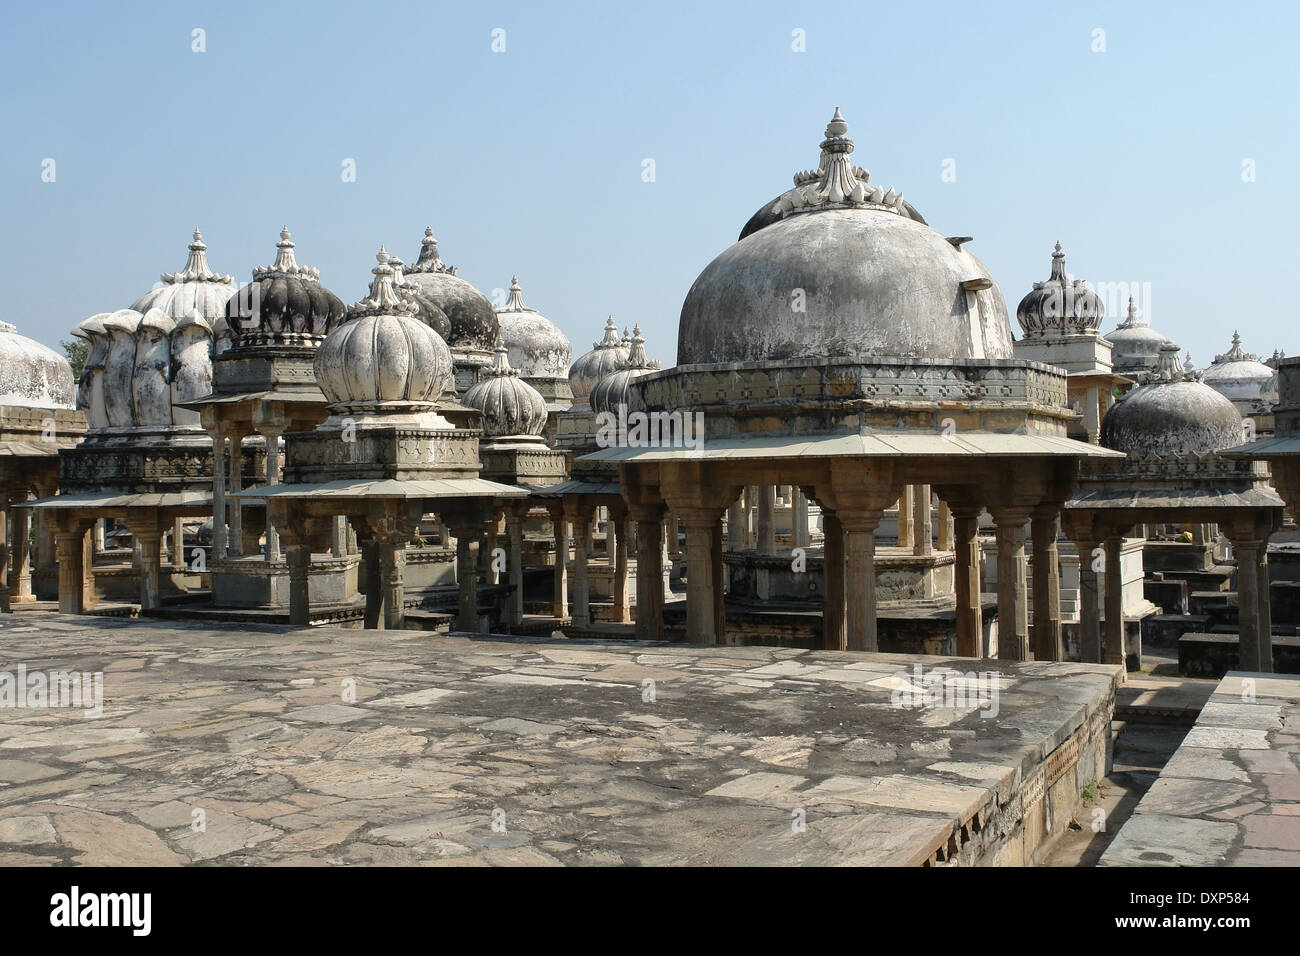 scenery at the Ahar Cenotaphs located in Ahar near Udaipur in India - Stock Image